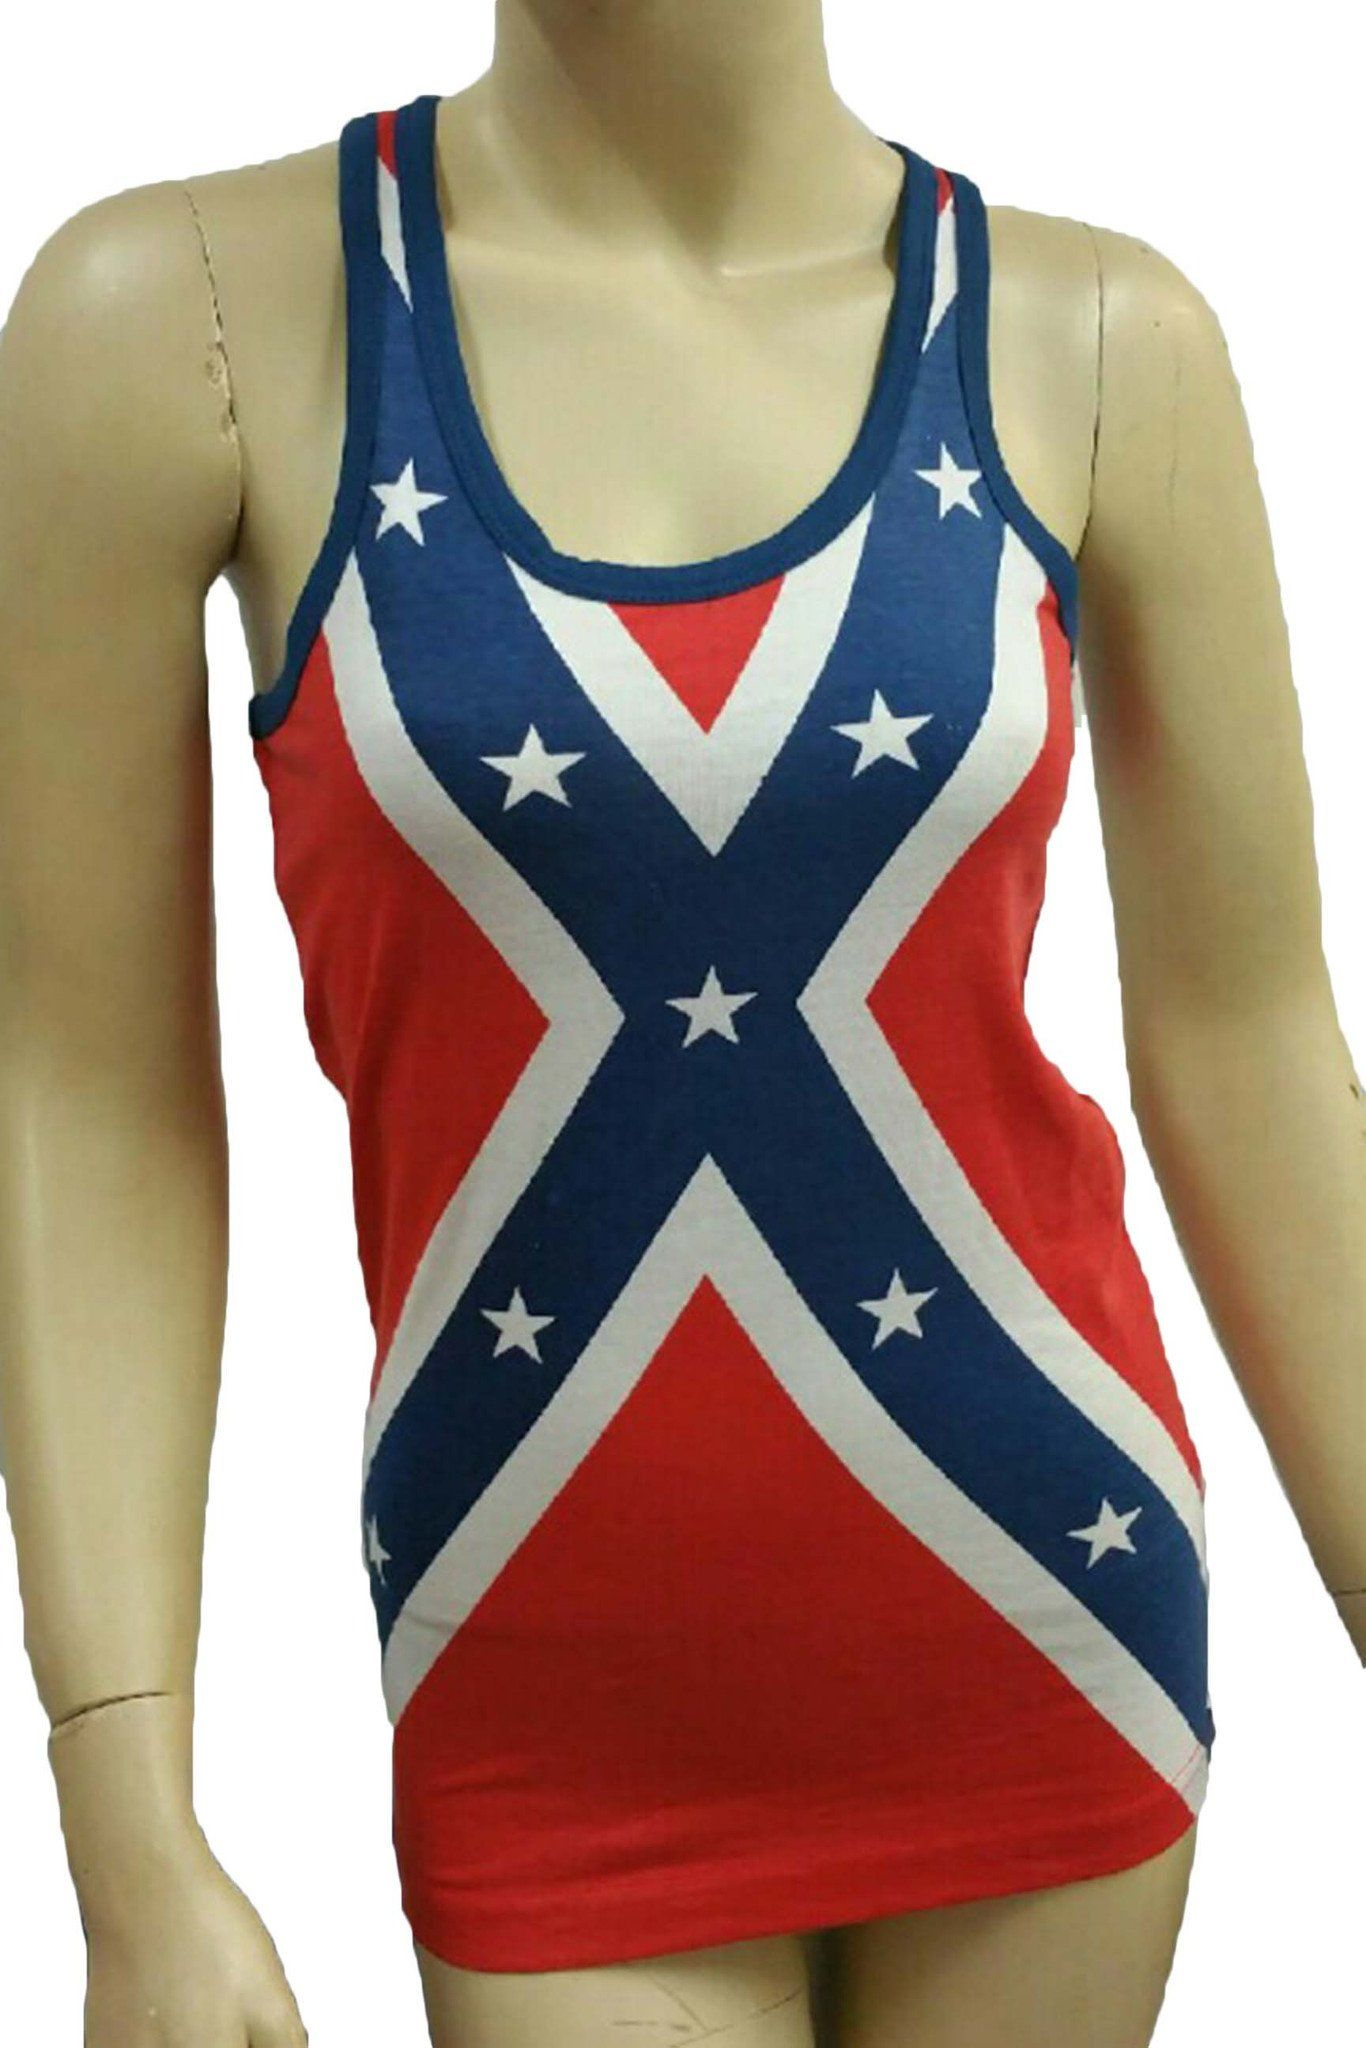 Pin On Rebel Flag Sleeveless And Long Sleeve